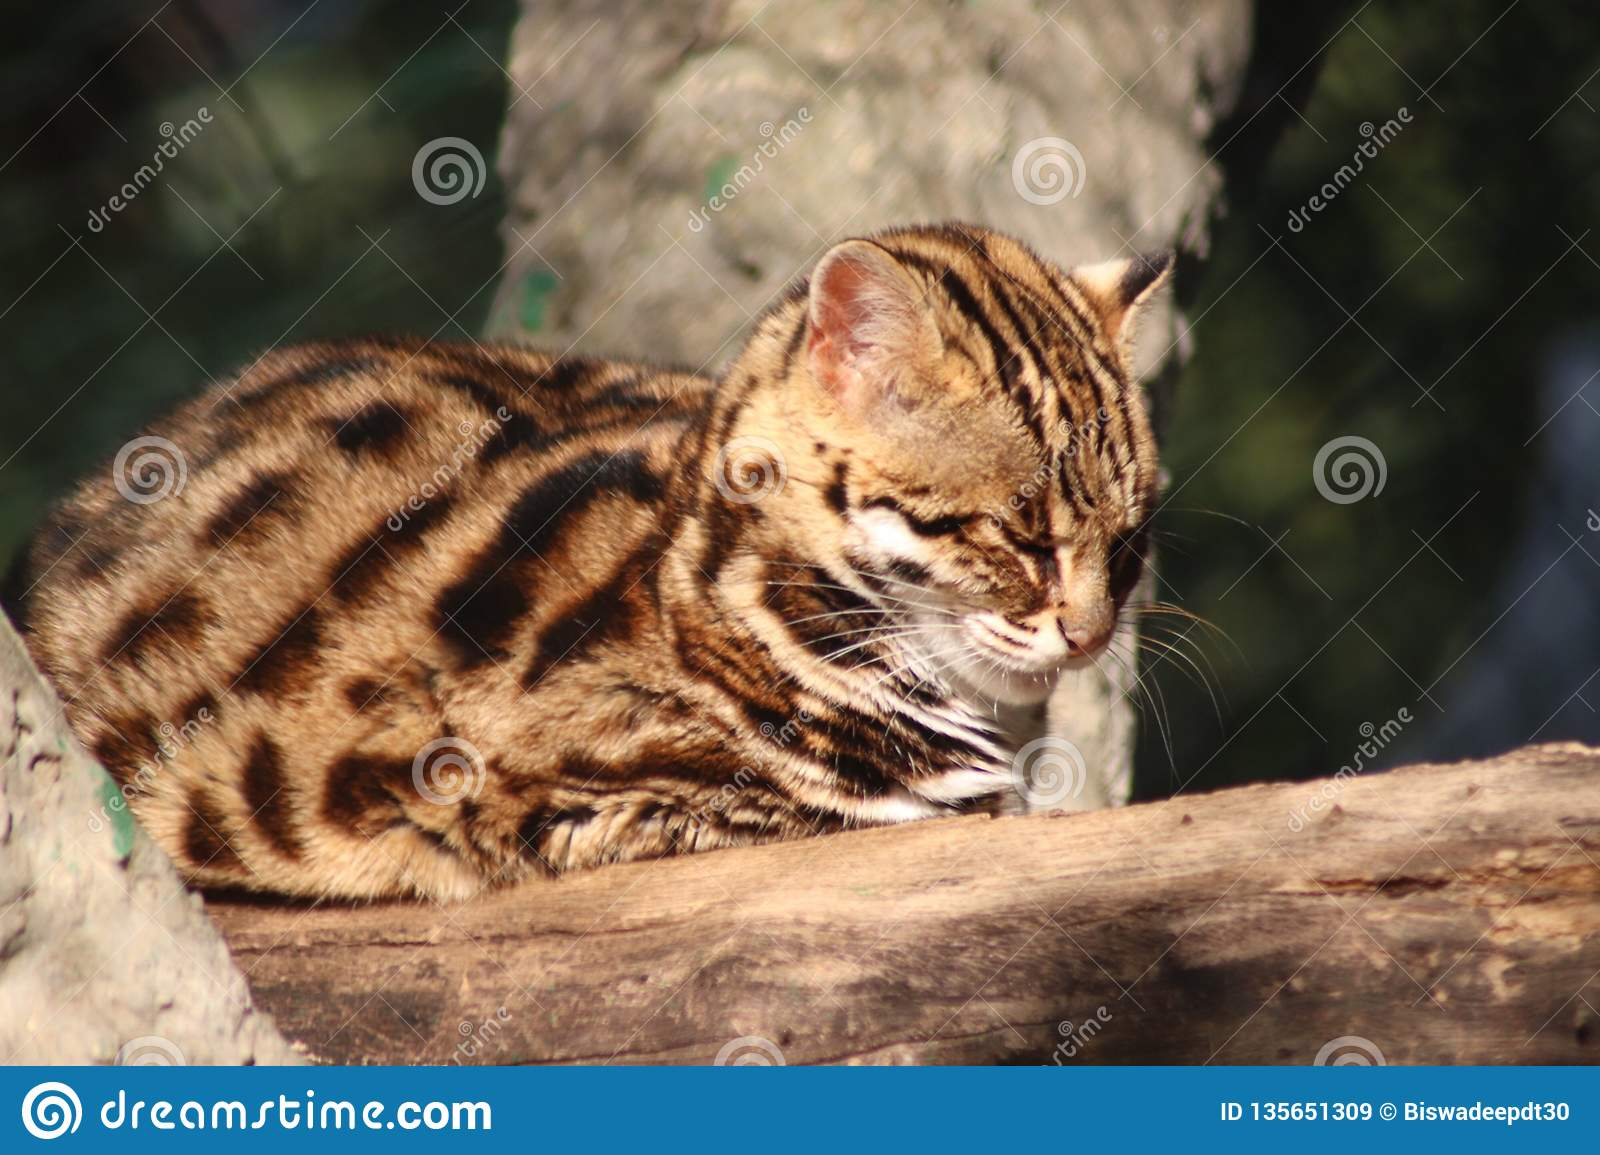 Leopard Cat In Natural Forest Stock Image - Image of forest